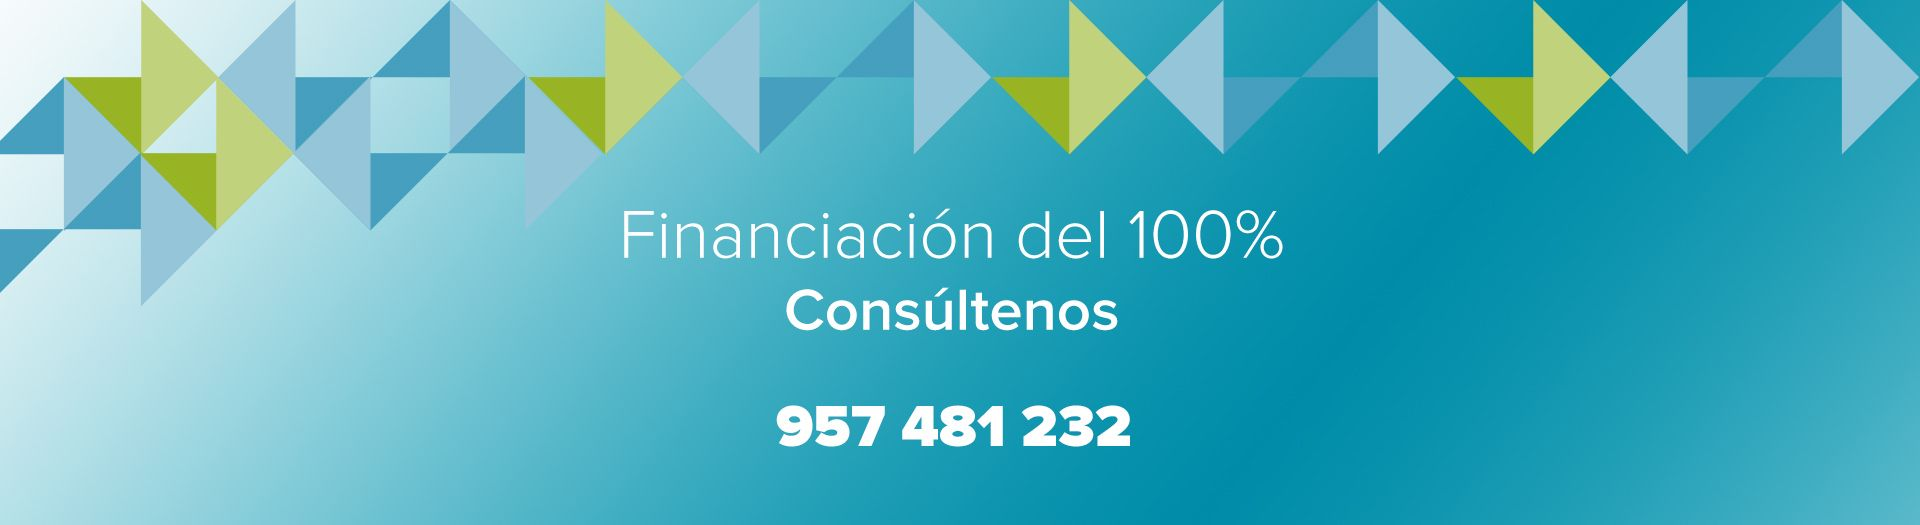 Clínica Dental Ventosa Sanchez Financiacion